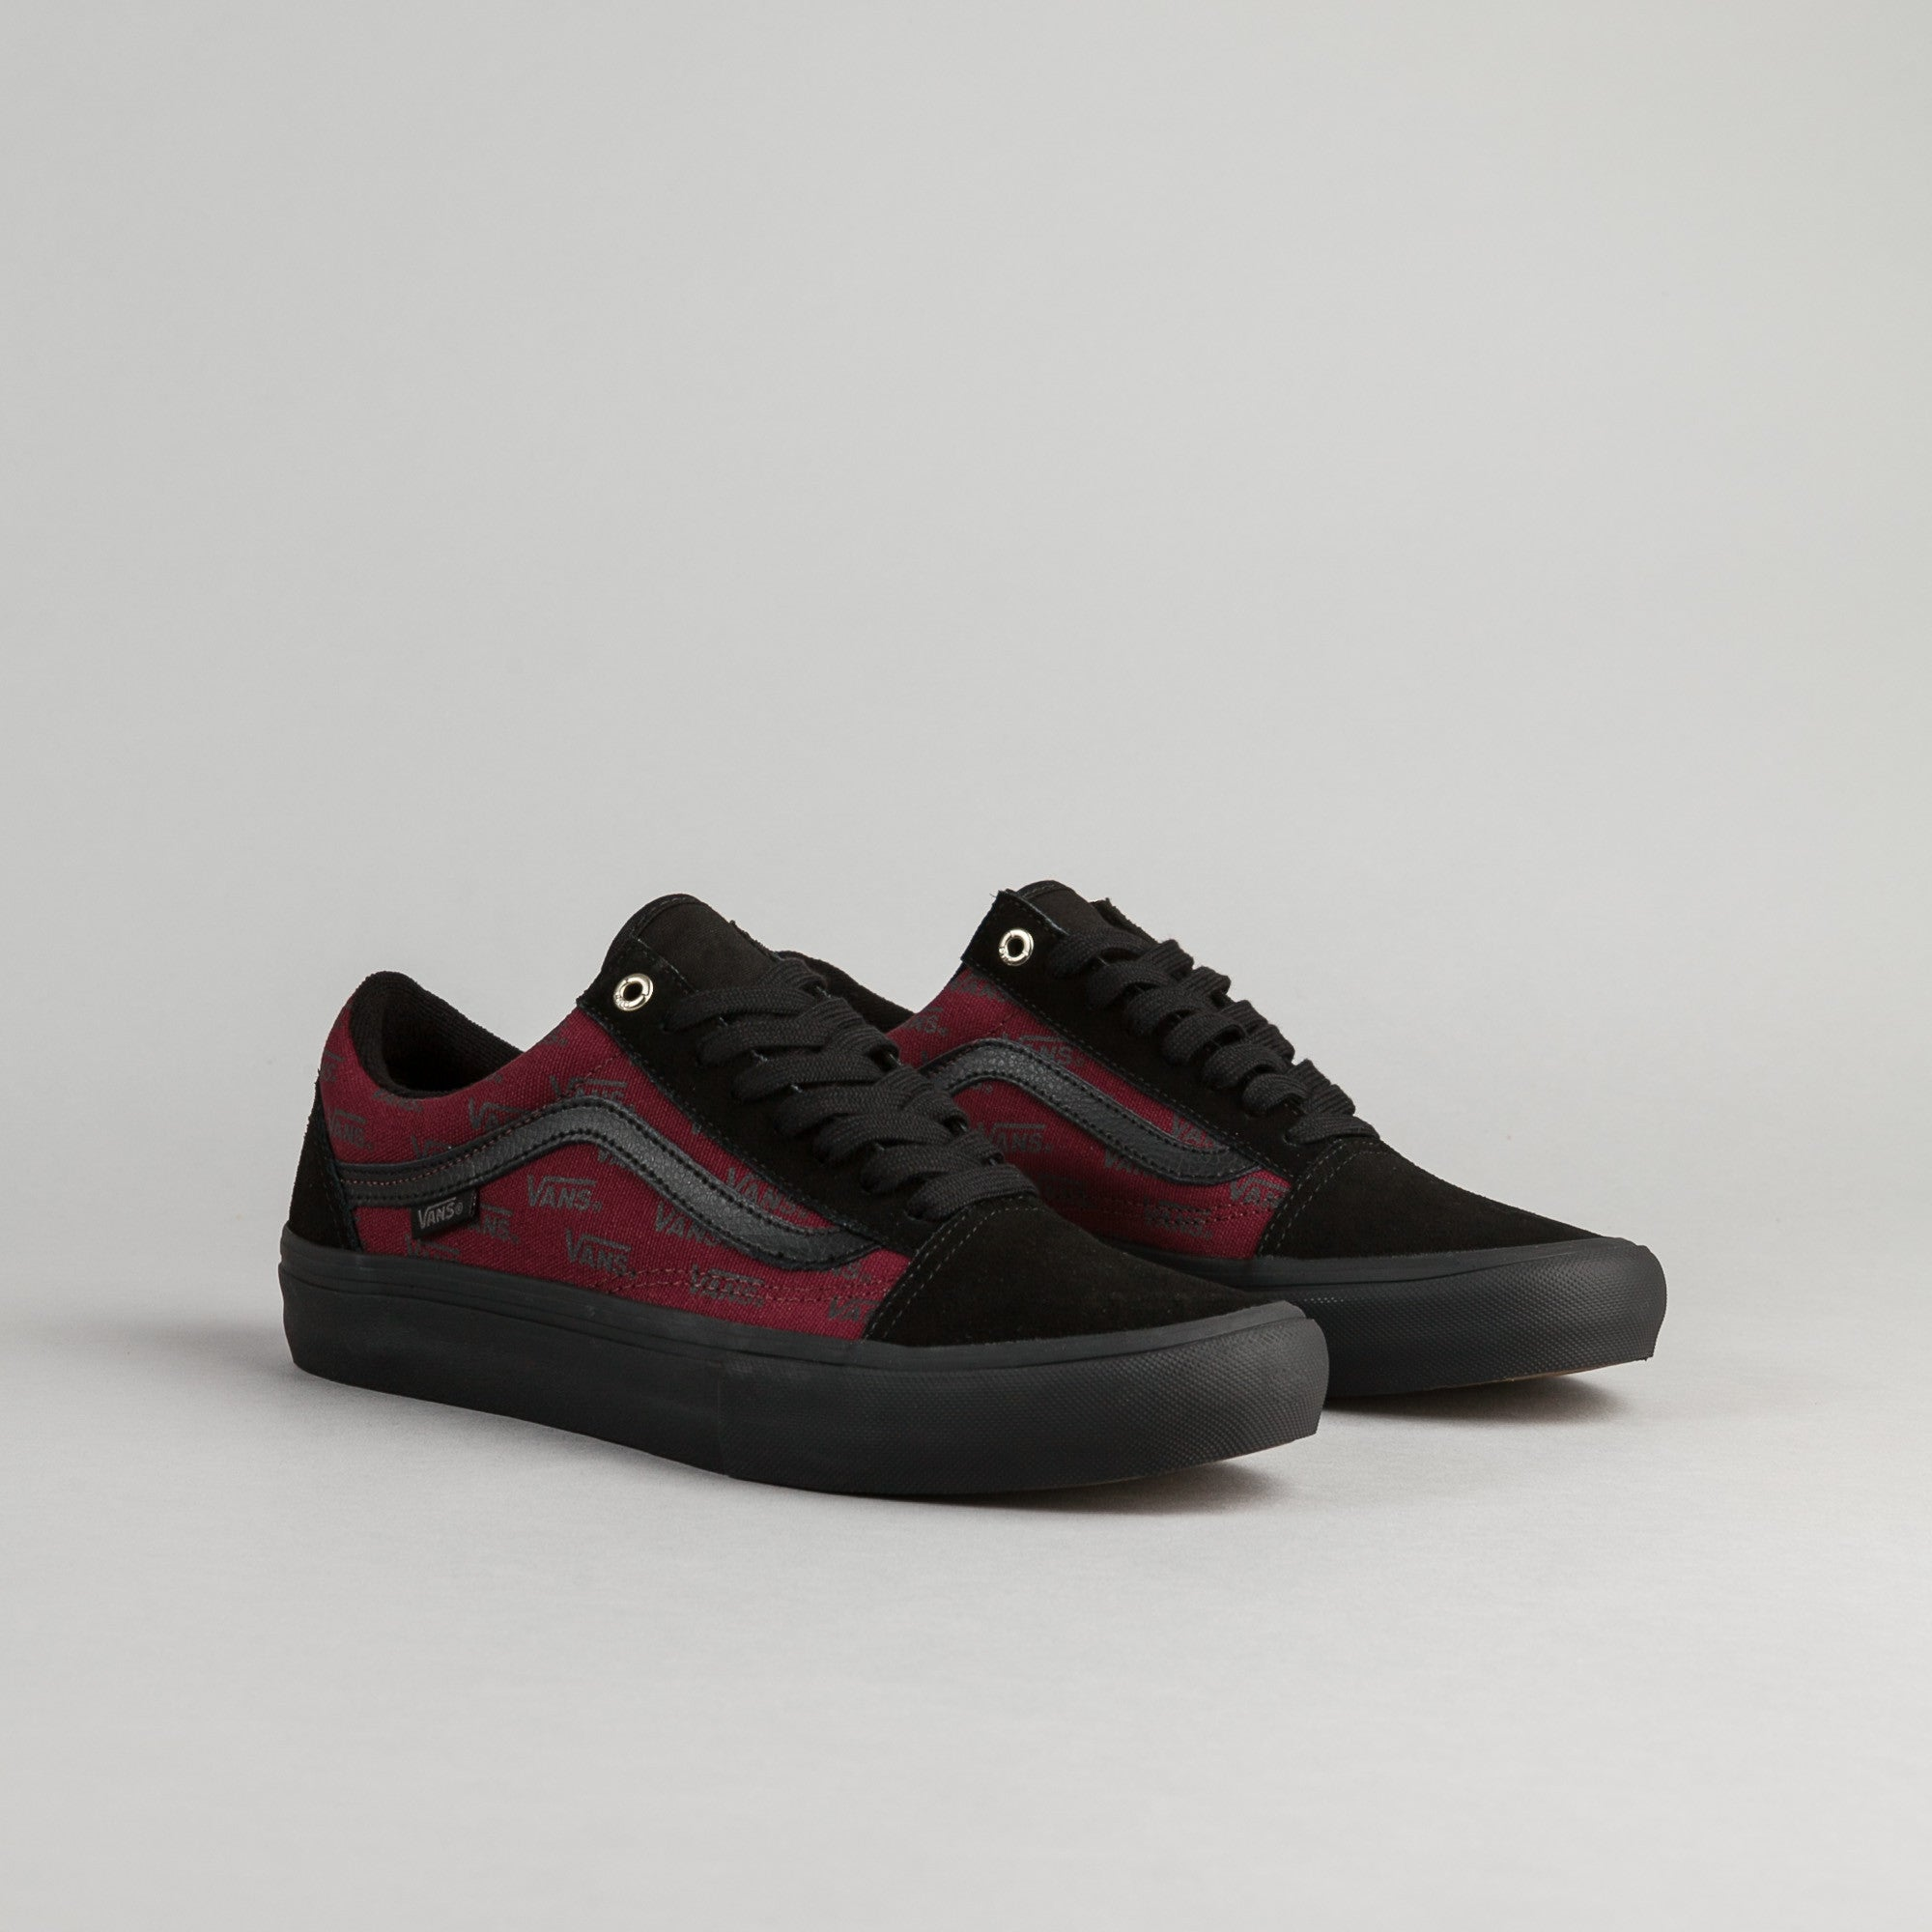 06ebfc2ba9d8e2 ... Vans Old Skool Pro Shoes - Port Royale   Black ...